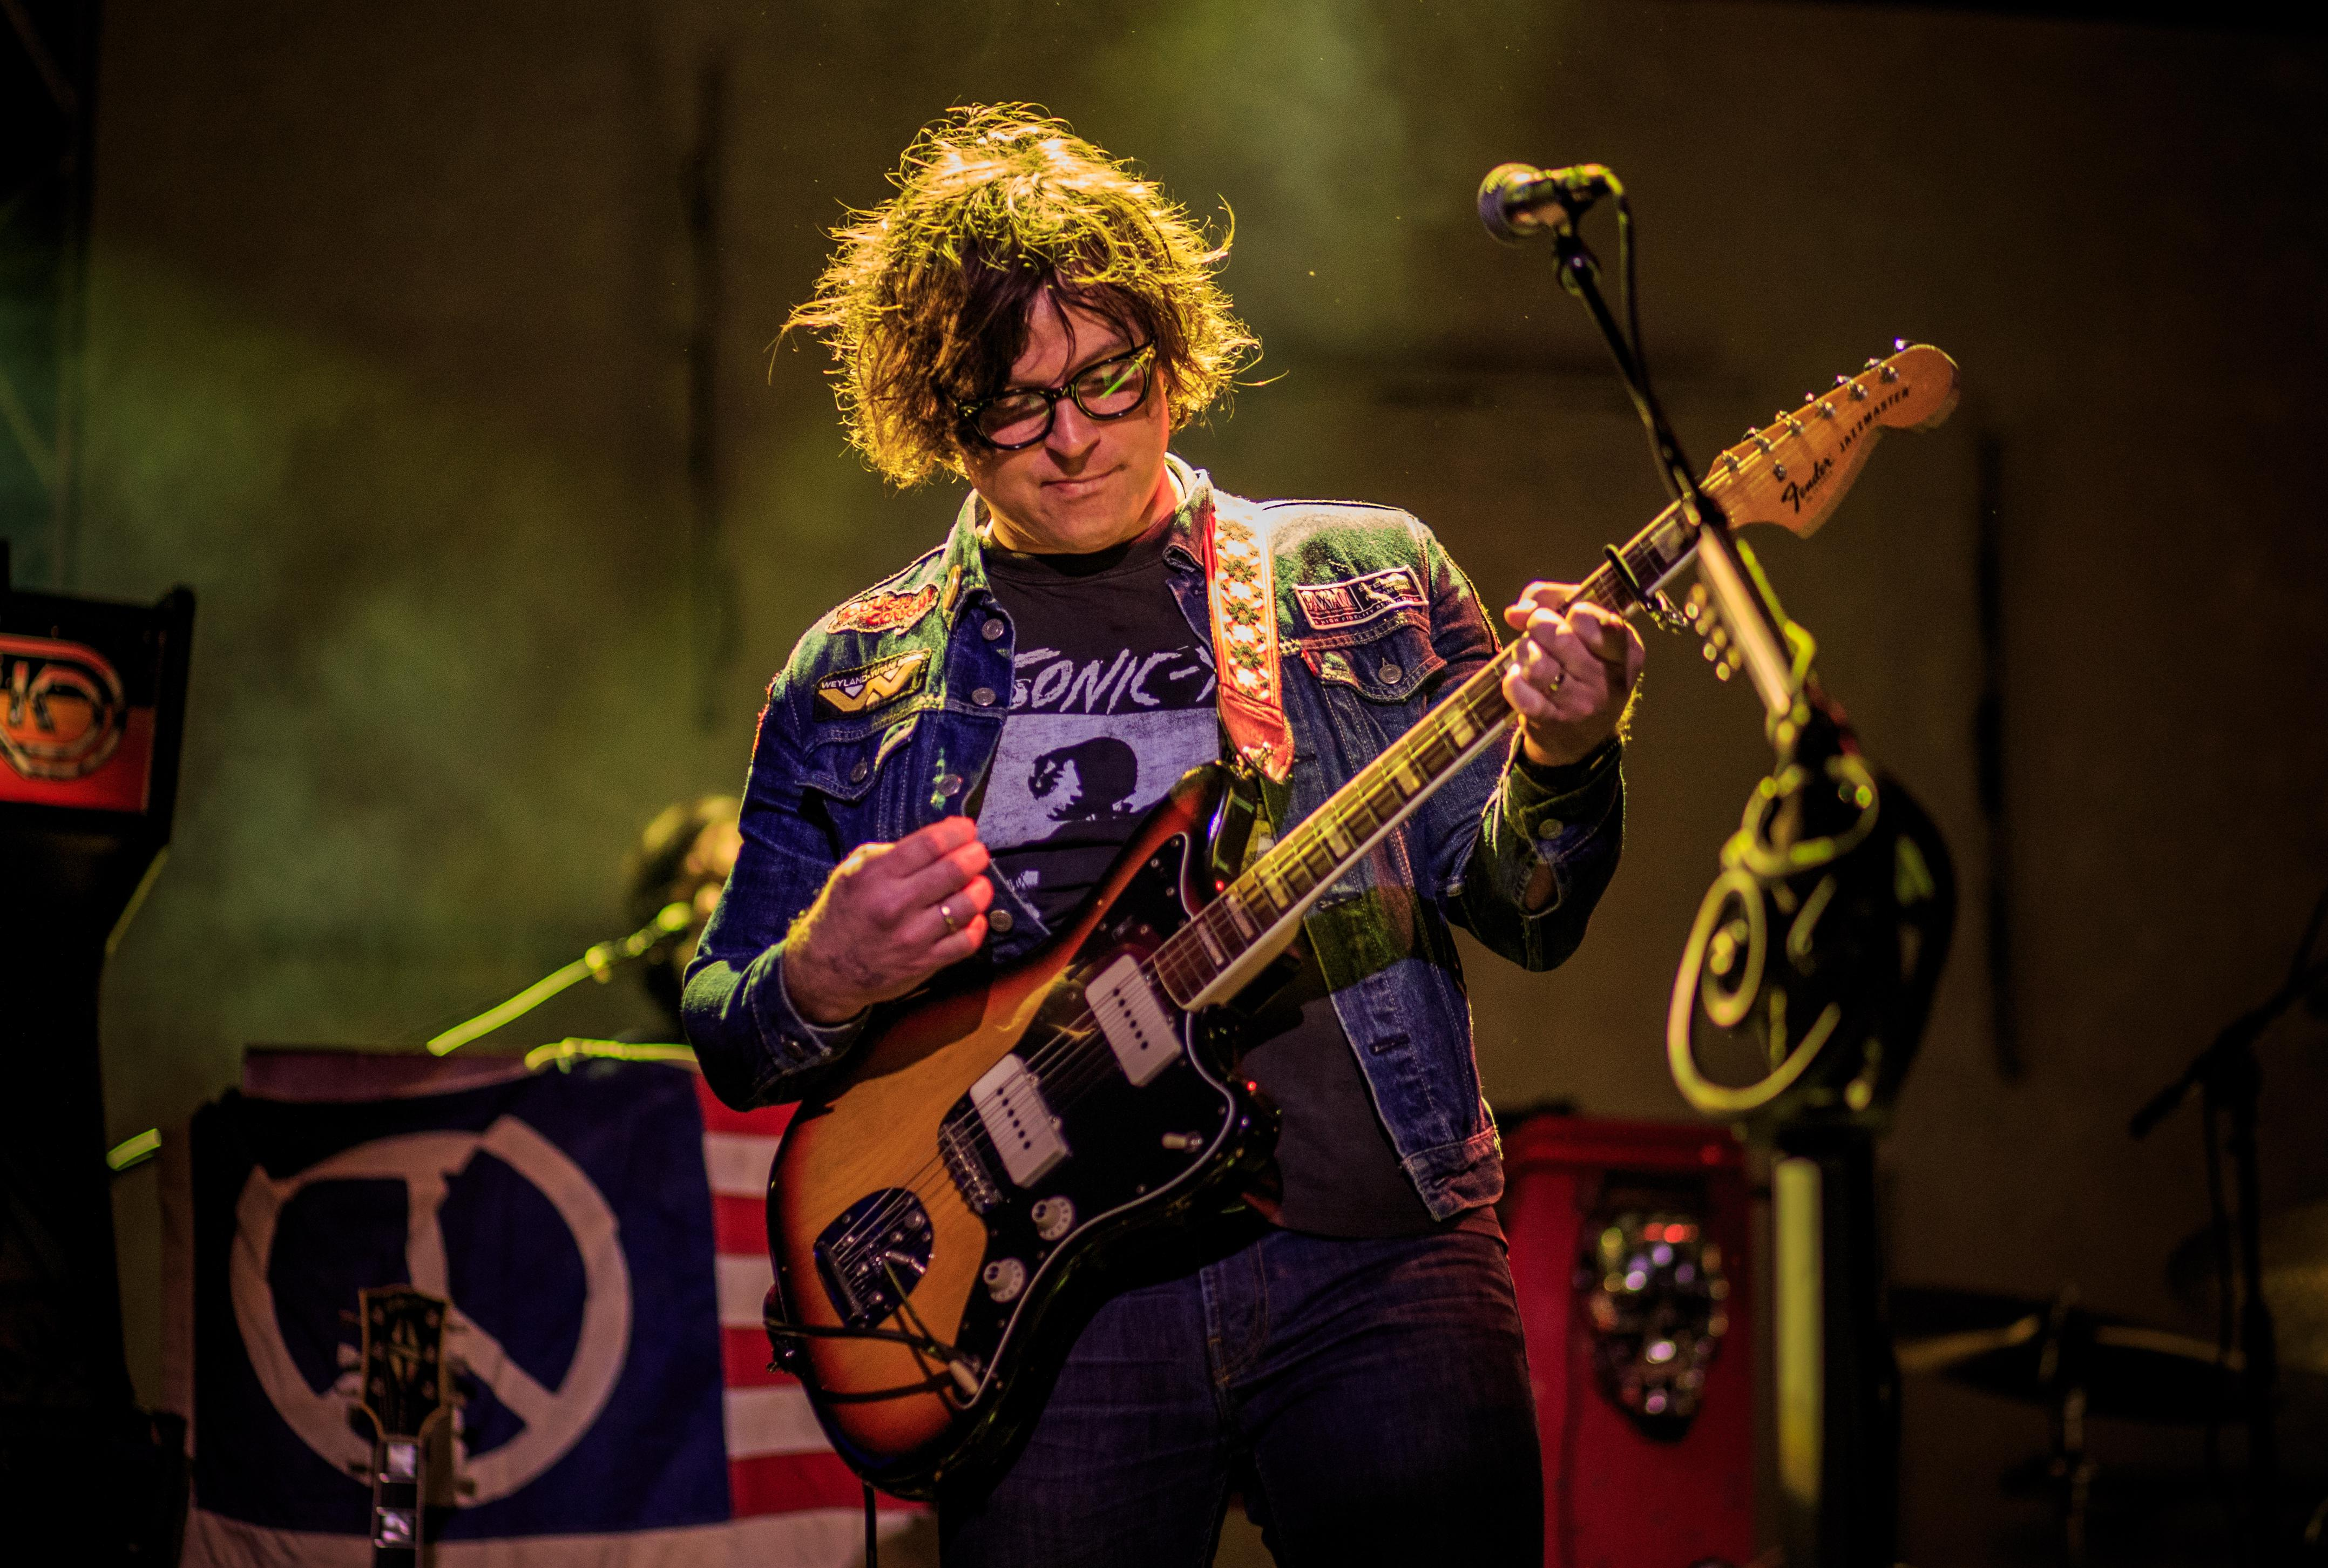 AUSTIN, TX - MARCH 16:  Singer-songwriter Ryan Adams performs at Music Is Universal presented by Marriott Rewards and Universal Music Group, during SXSW at the JW Marriott Austin on March 16, 2016 in Austin, Texas  (Photo by Christopher Polk/Getty Images for Universal Music)